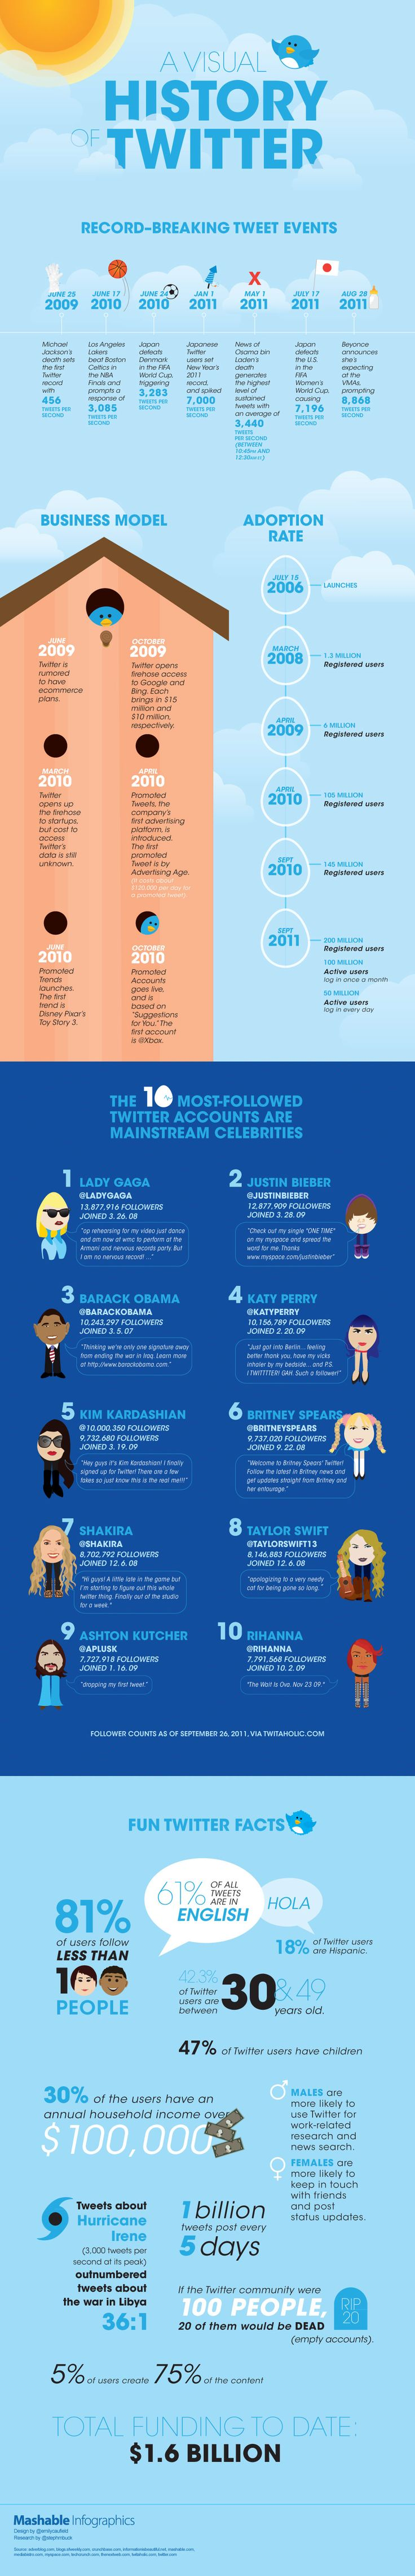 A visual #History of #Twitter | mashable.com | by Emily Caufield |